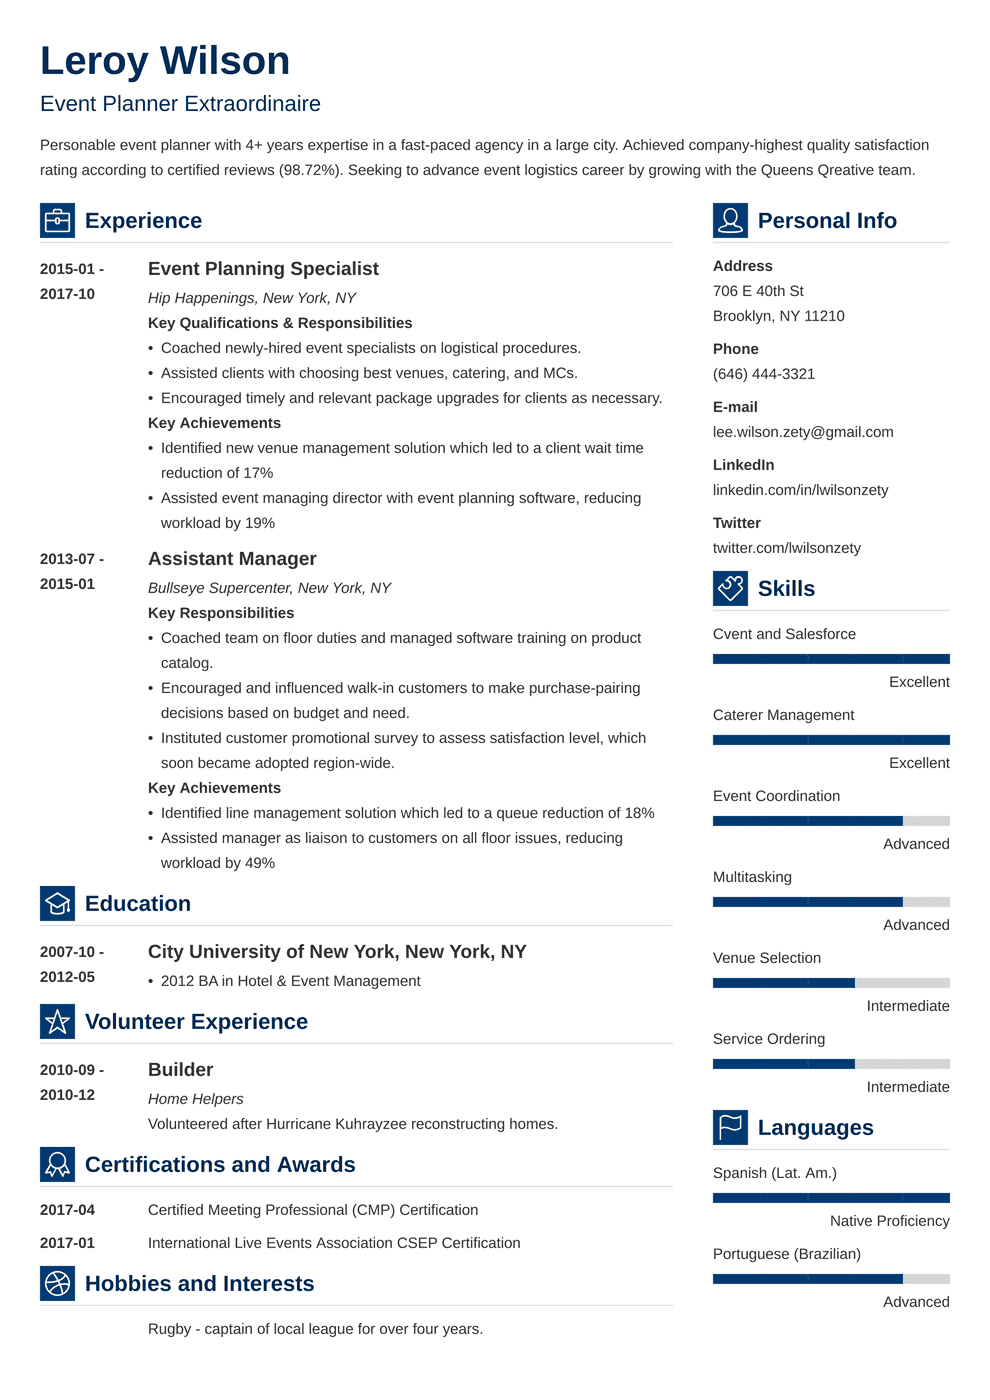 event planner resume template vibes in 2020 Event